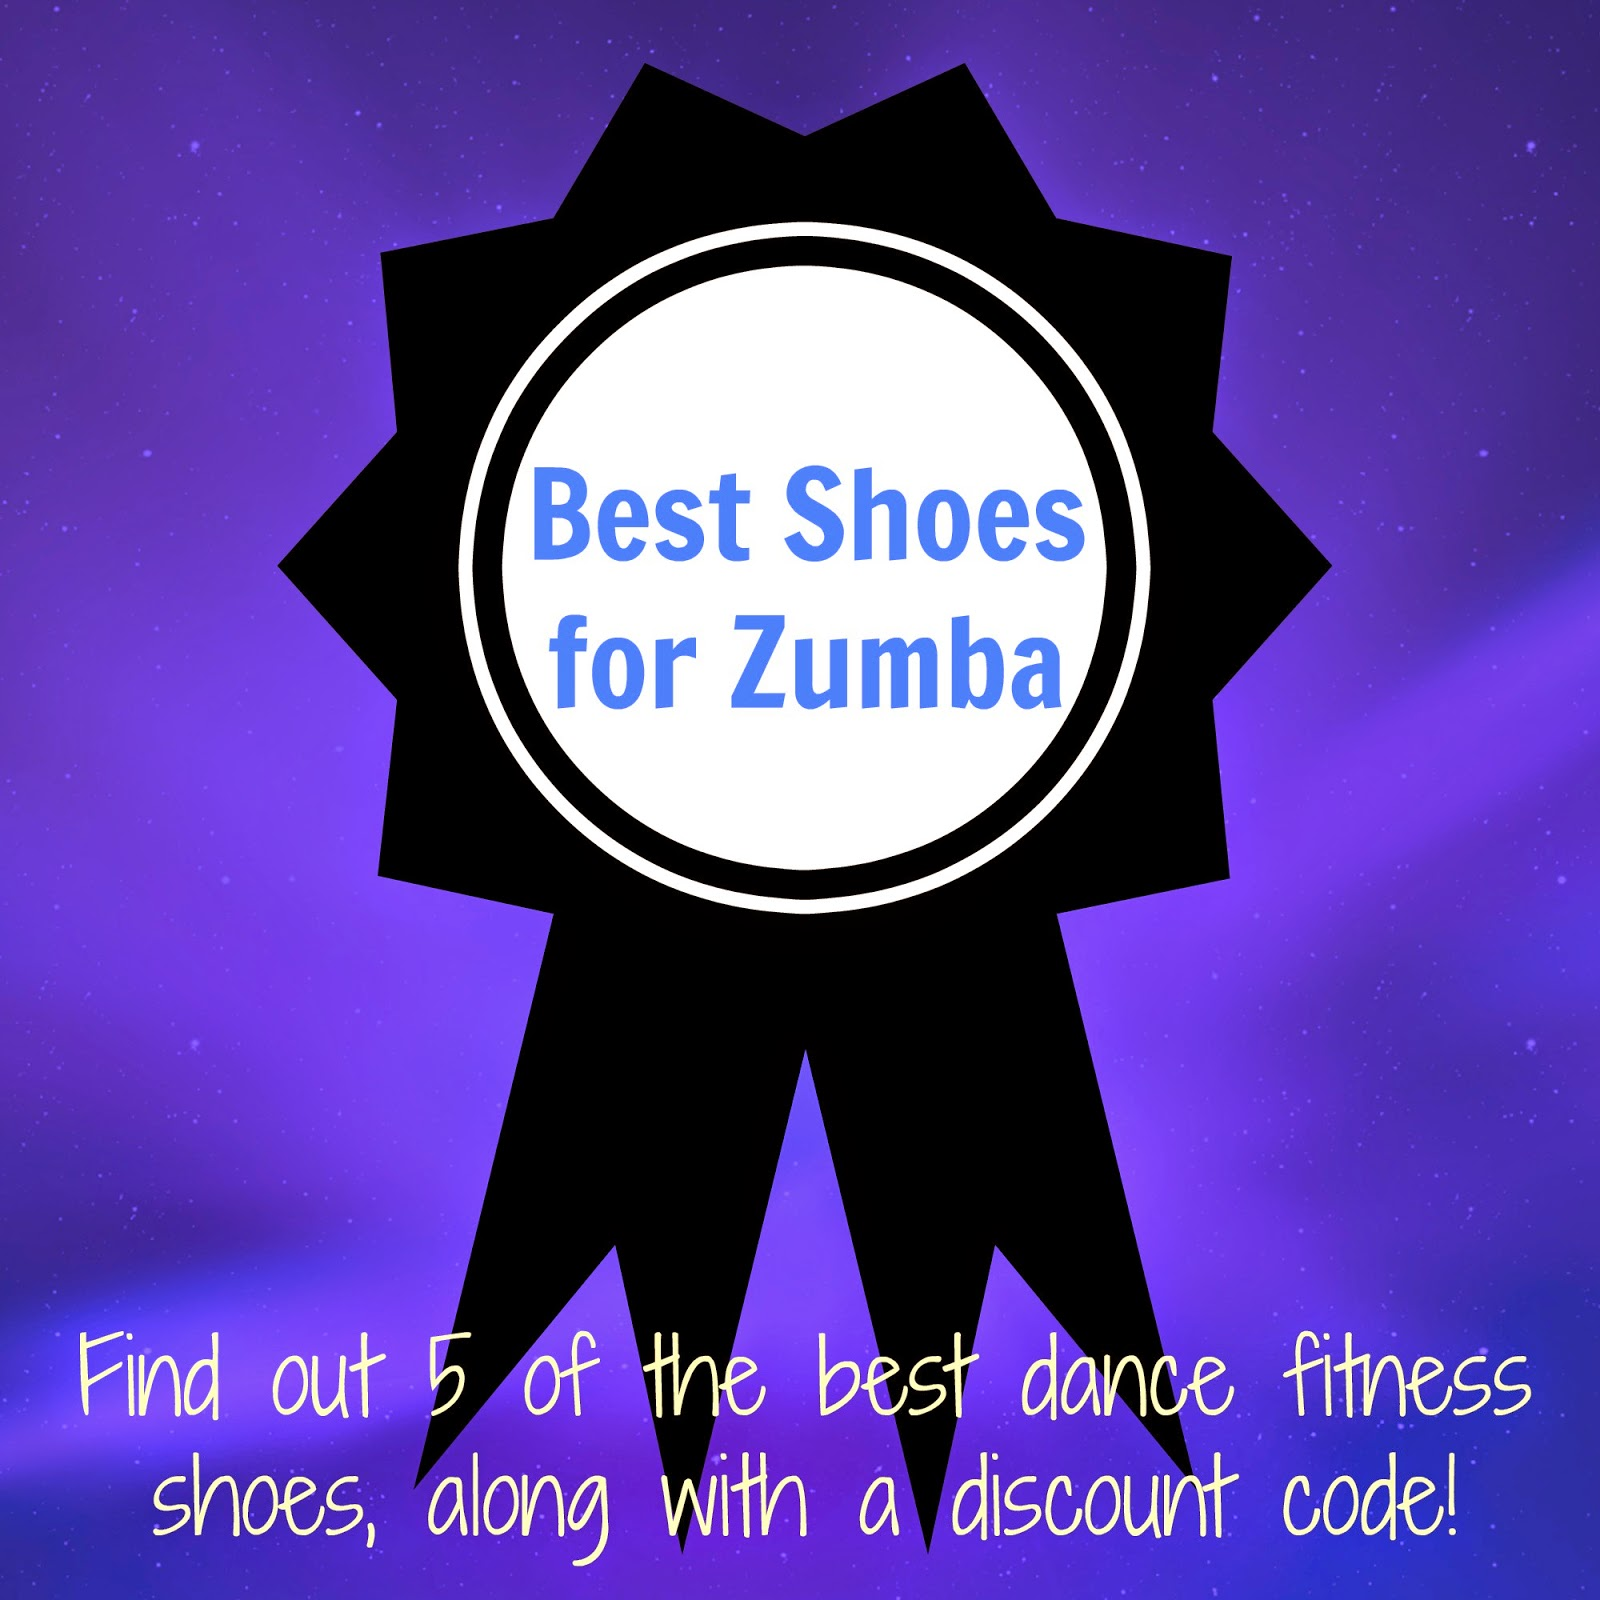 Looking for the best Zumba shoes?